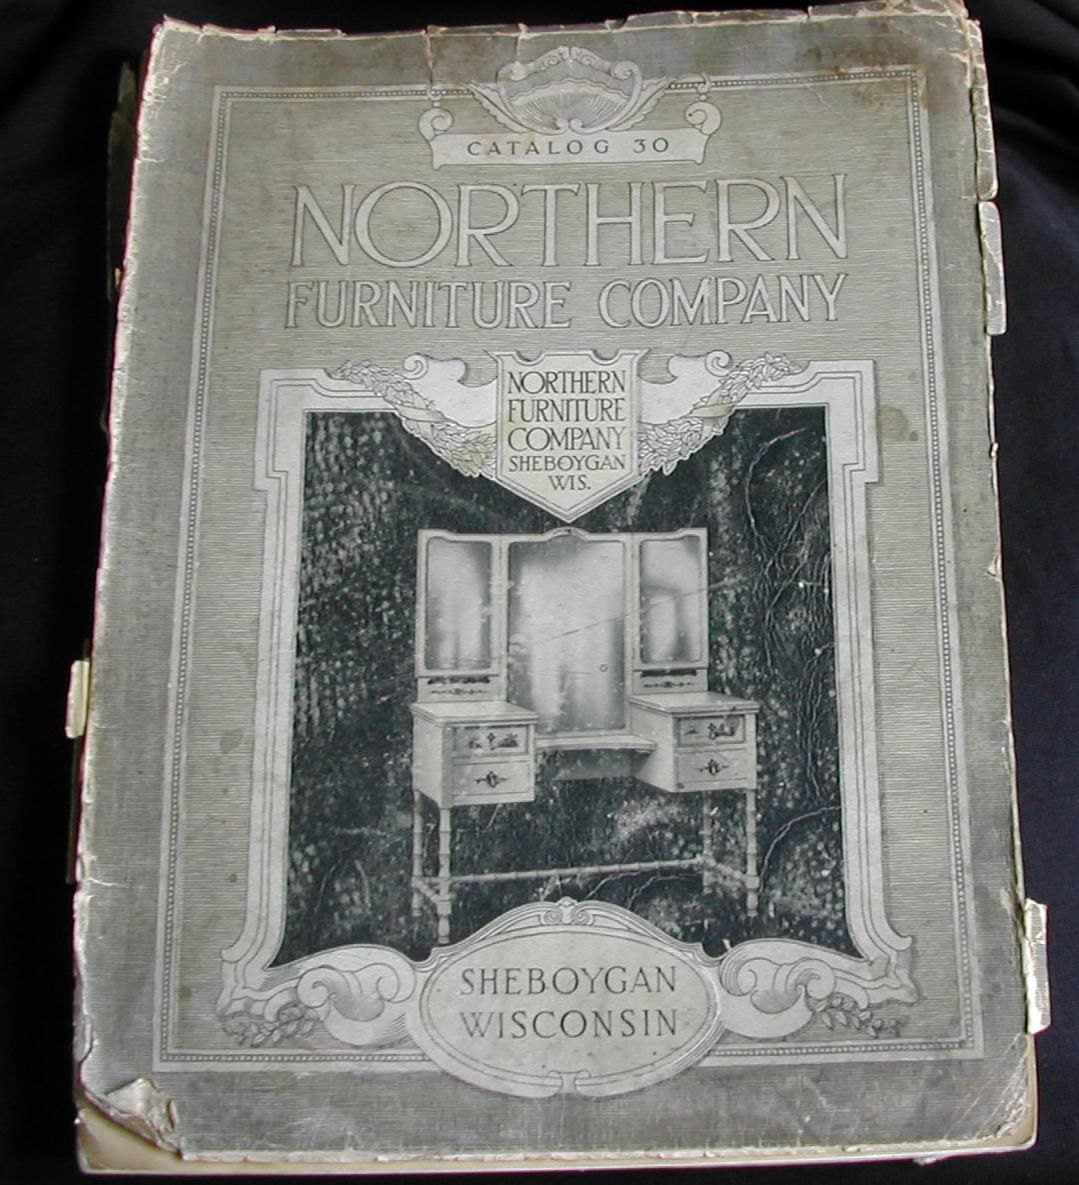 Catalog Furniture Companies: 1917 Northern Furniture Company Sheboygan Wisconsin